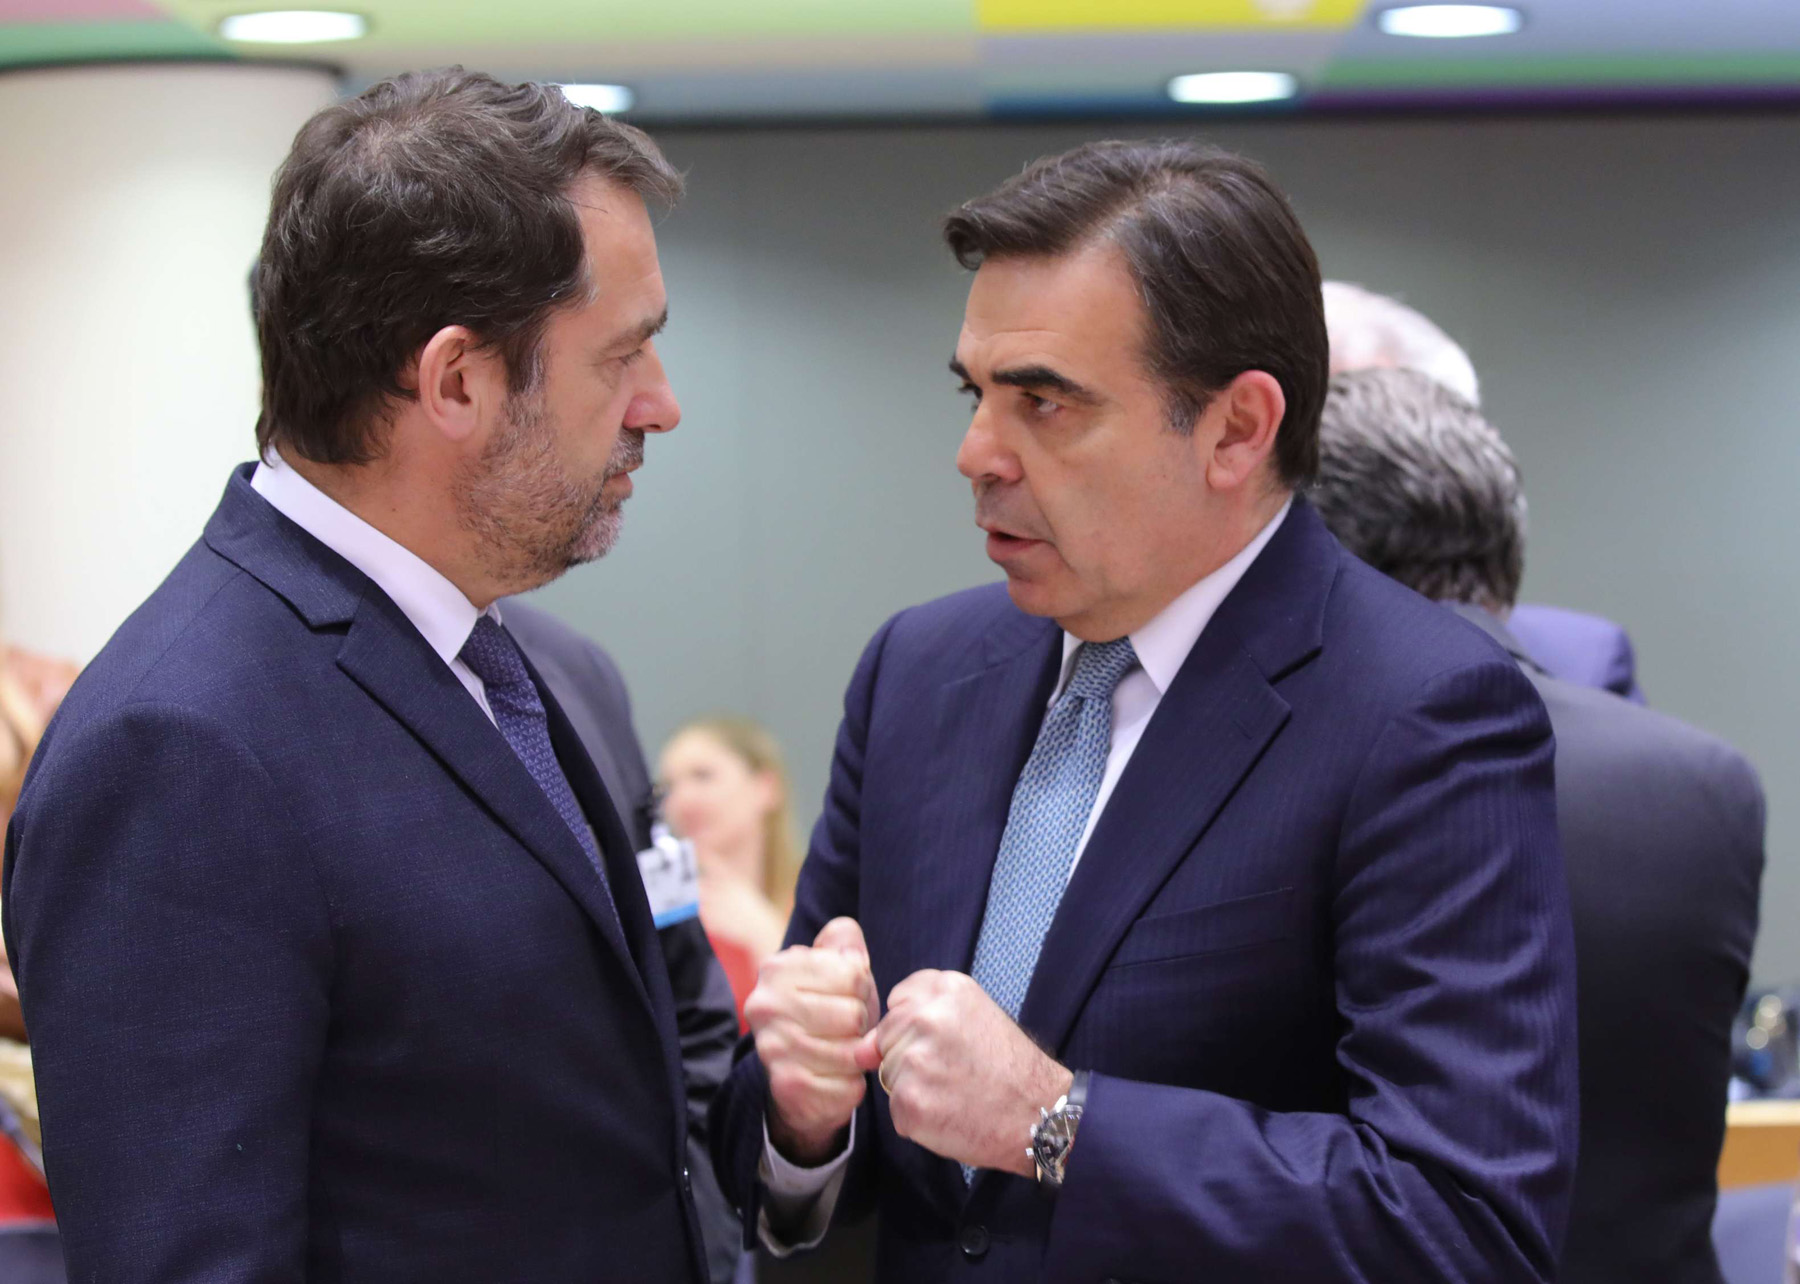 European Commissioner, Margaritas Schinas (R) speaks with French Interior Minister Christophe Castaner during a meeting of EU Interior Ministers in Brussels, March 4. (AP)